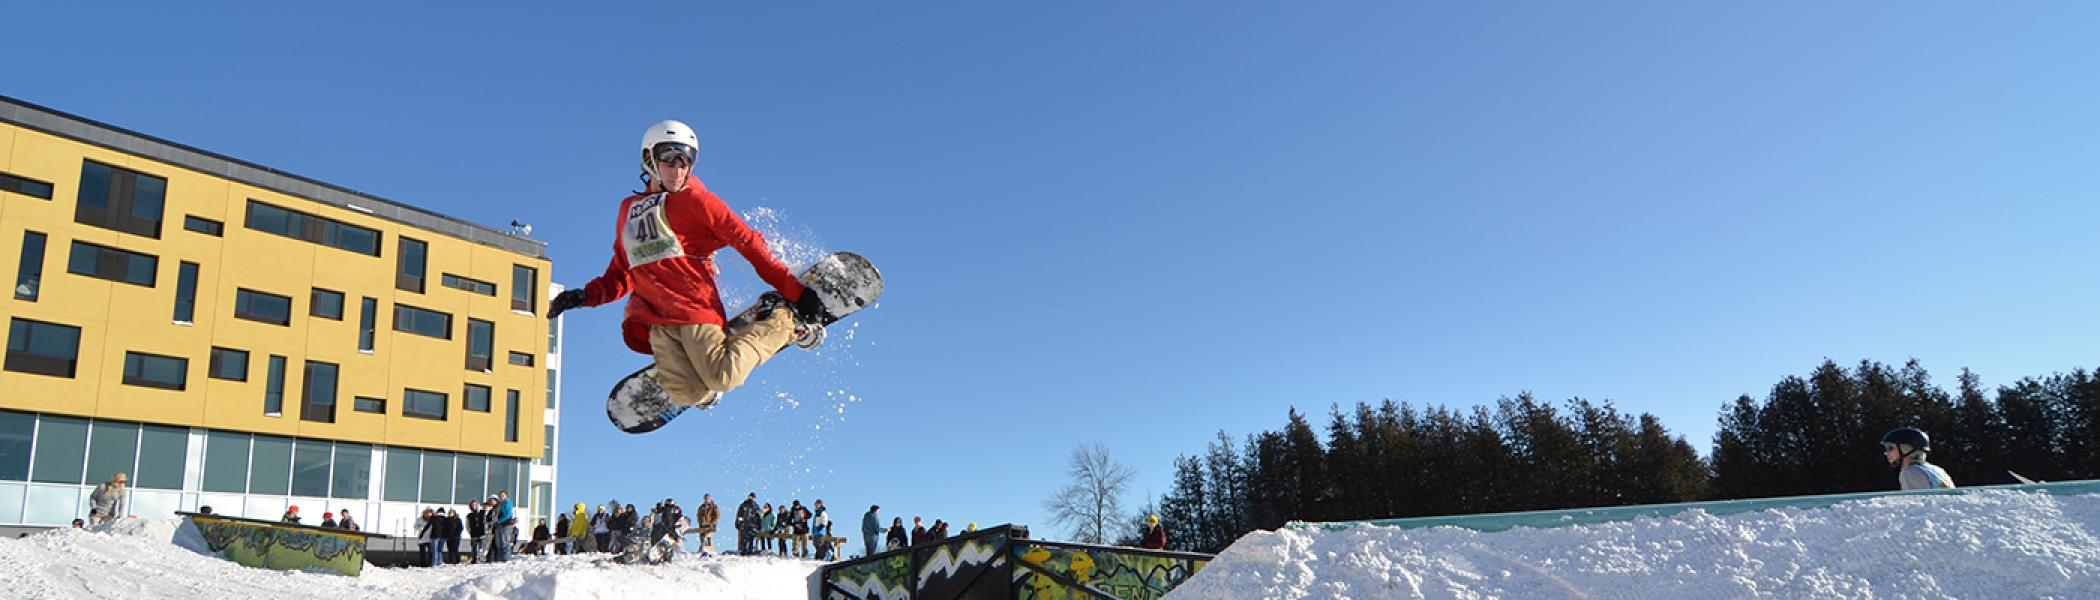 Student performing a snowboard air trick during railjam in the witer time